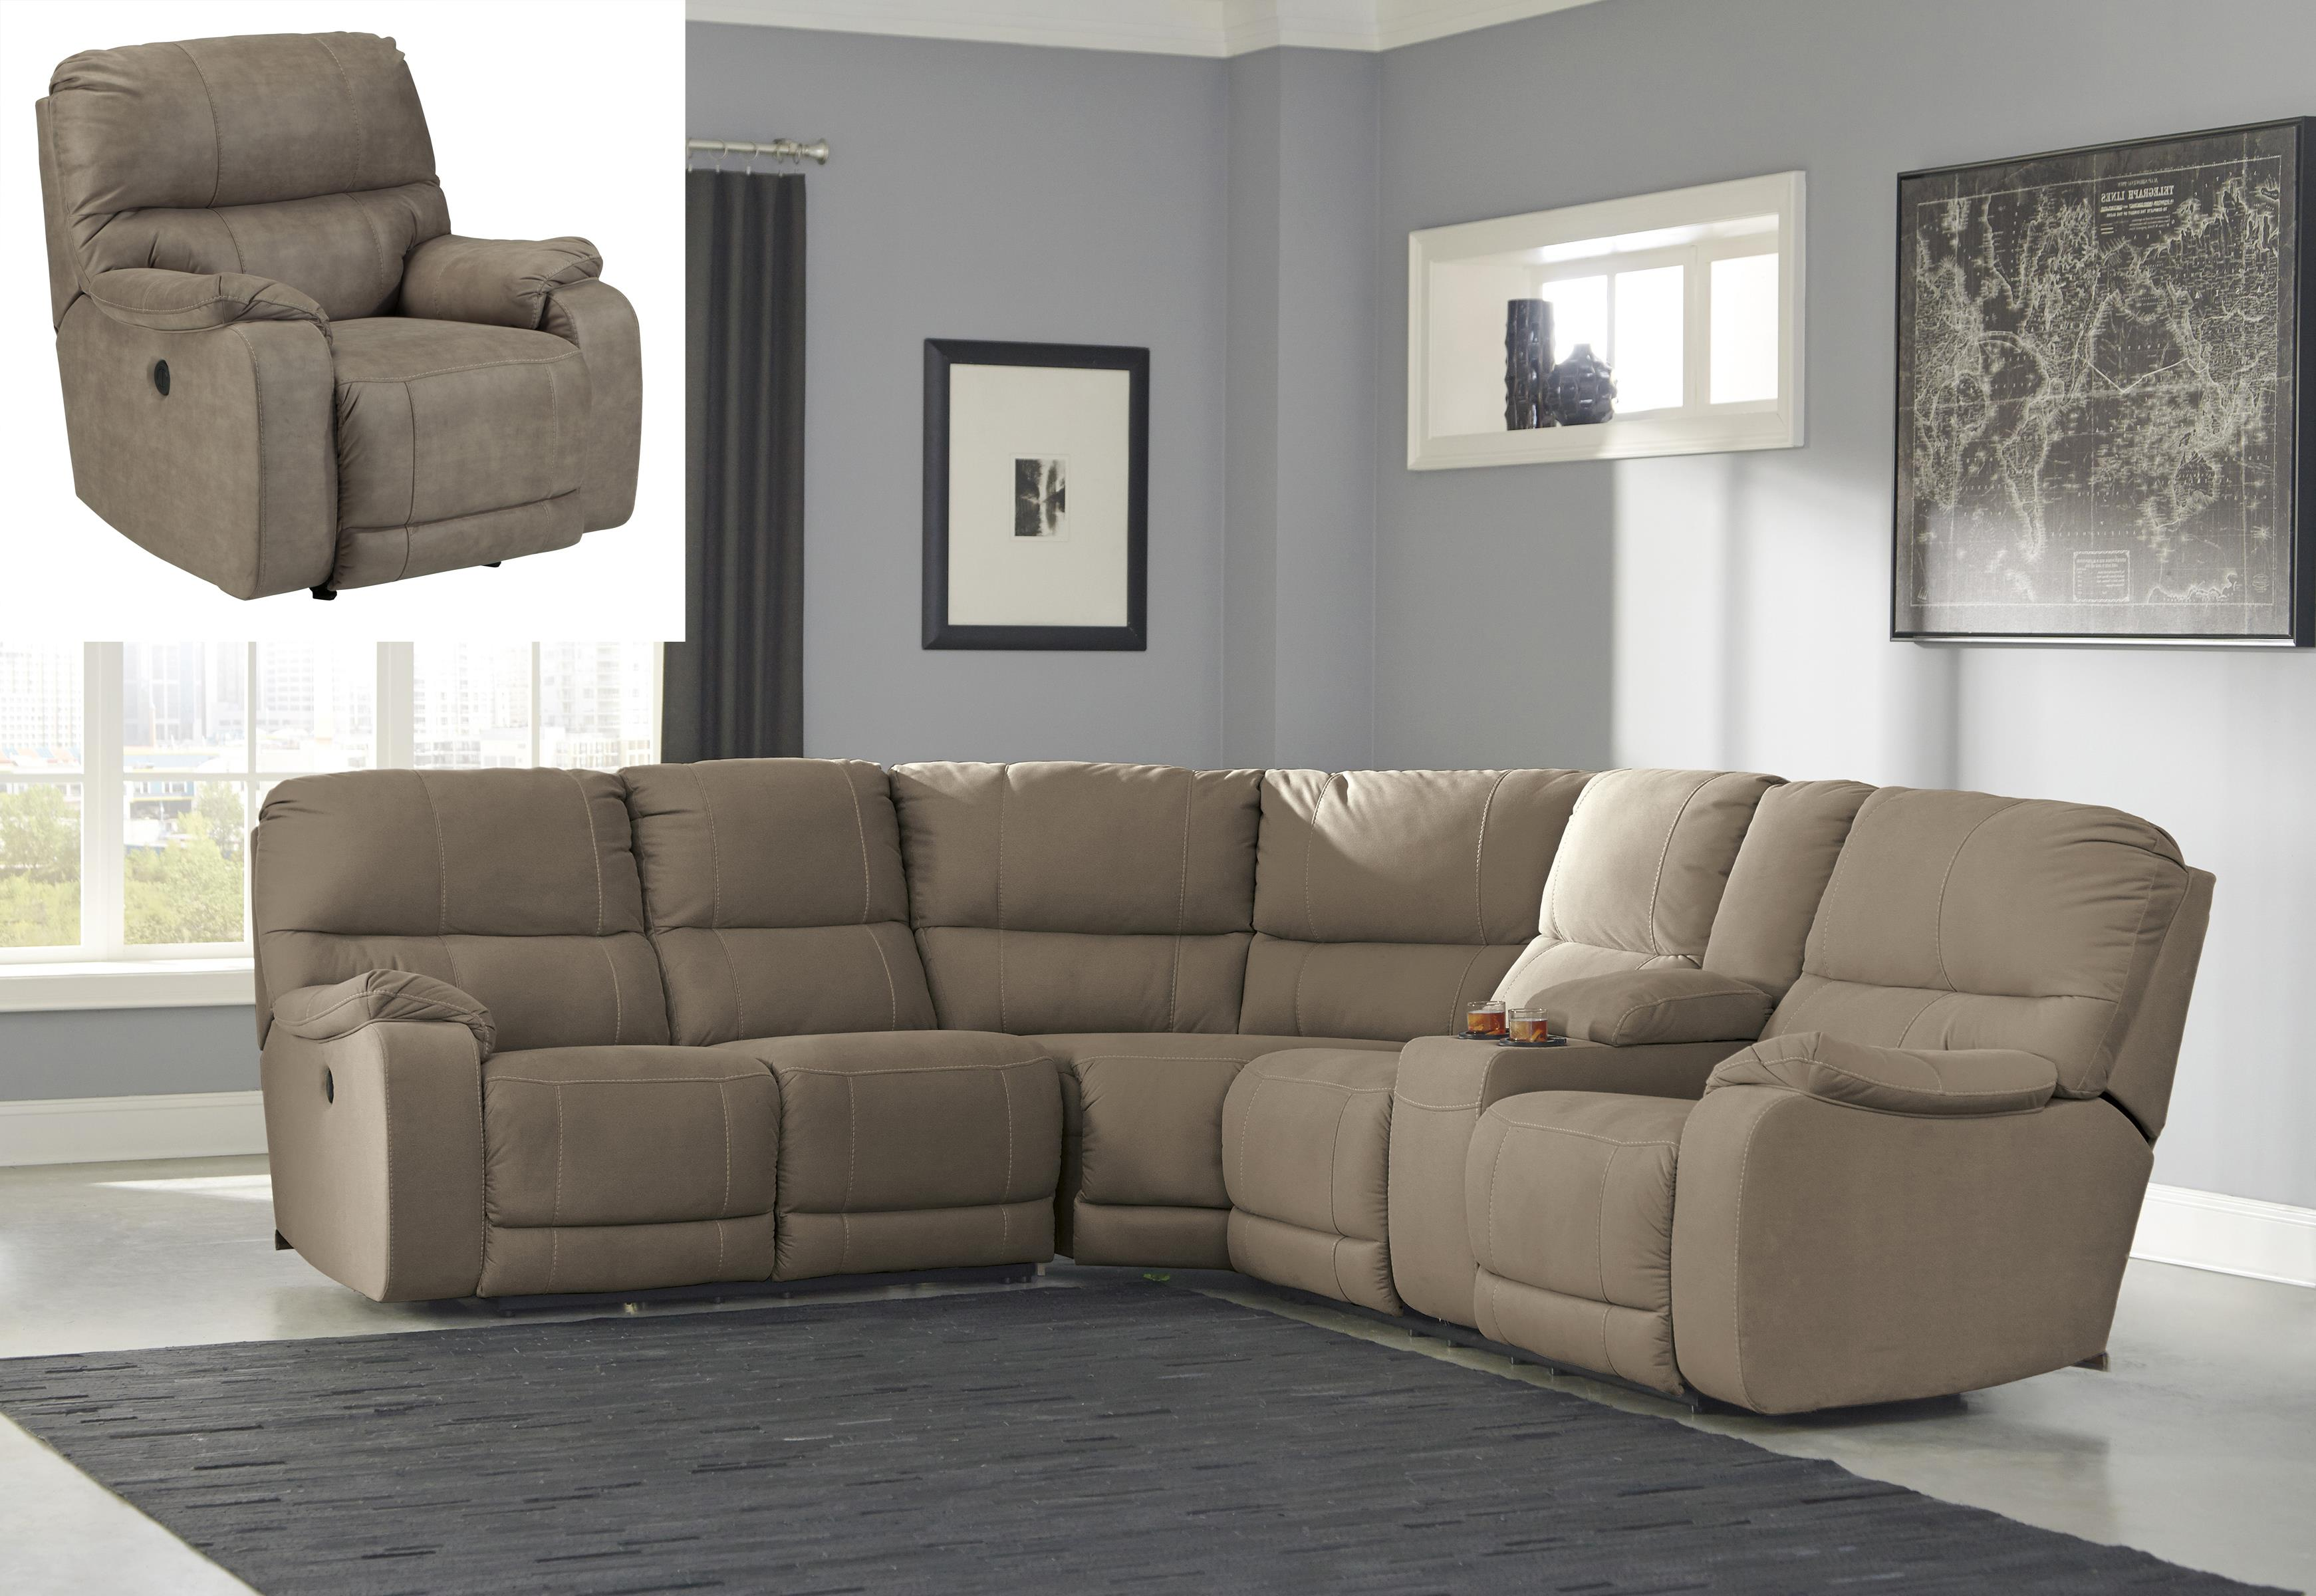 Benchcraft Bohannon Reclining Living Room Group - Item Number: 57403 Living Room Group 2